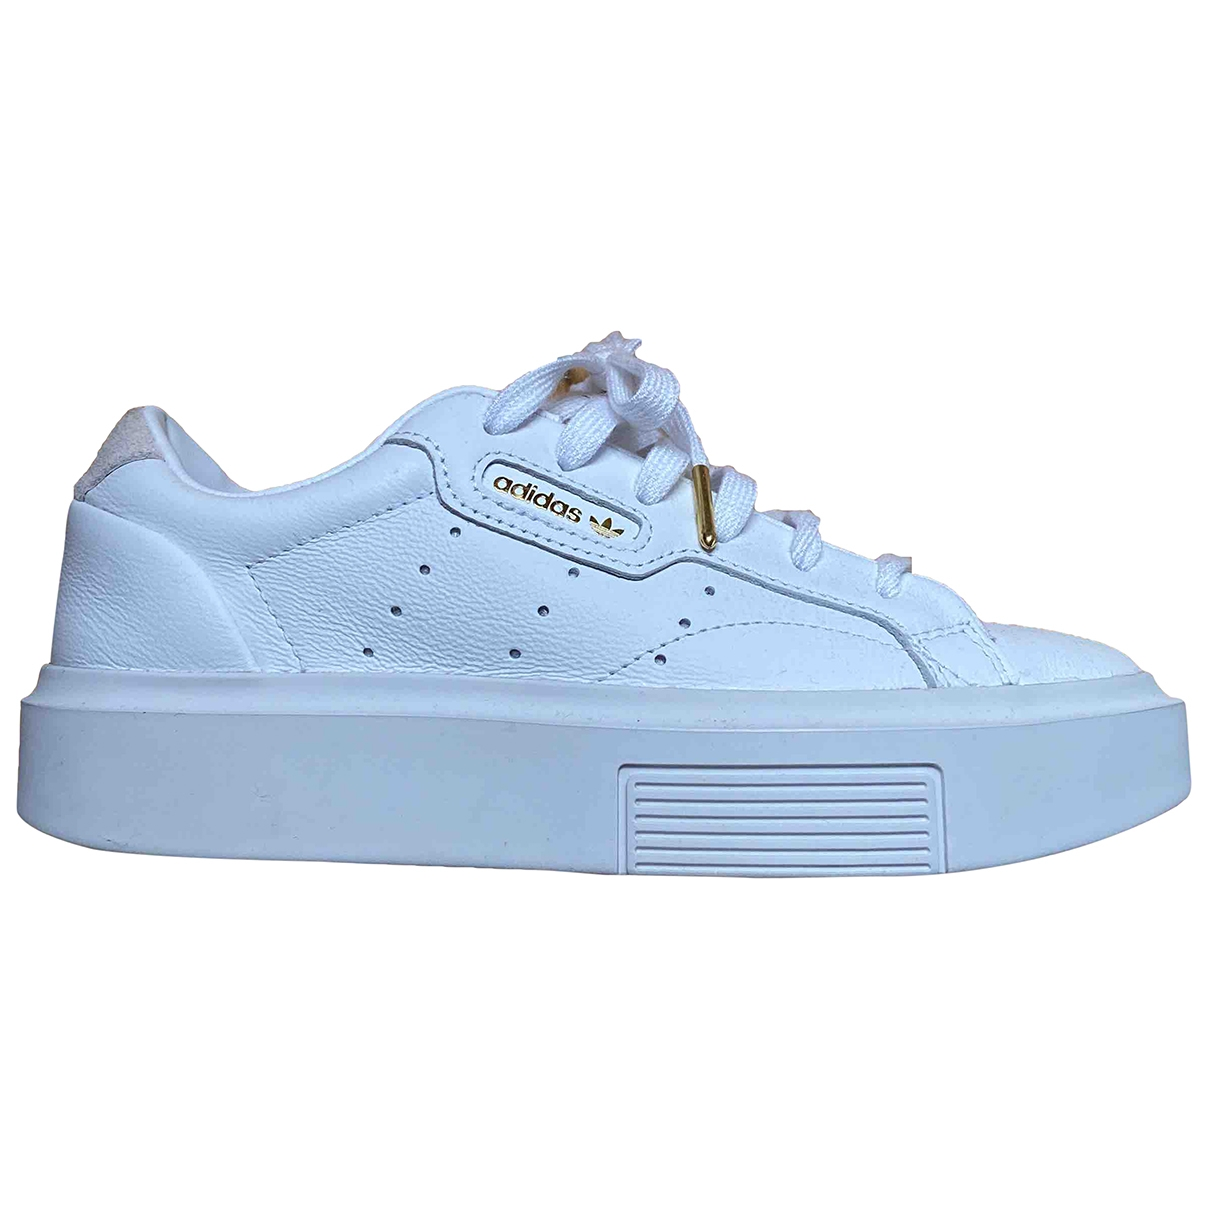 Adidas \N White Leather Trainers for Women 36 EU